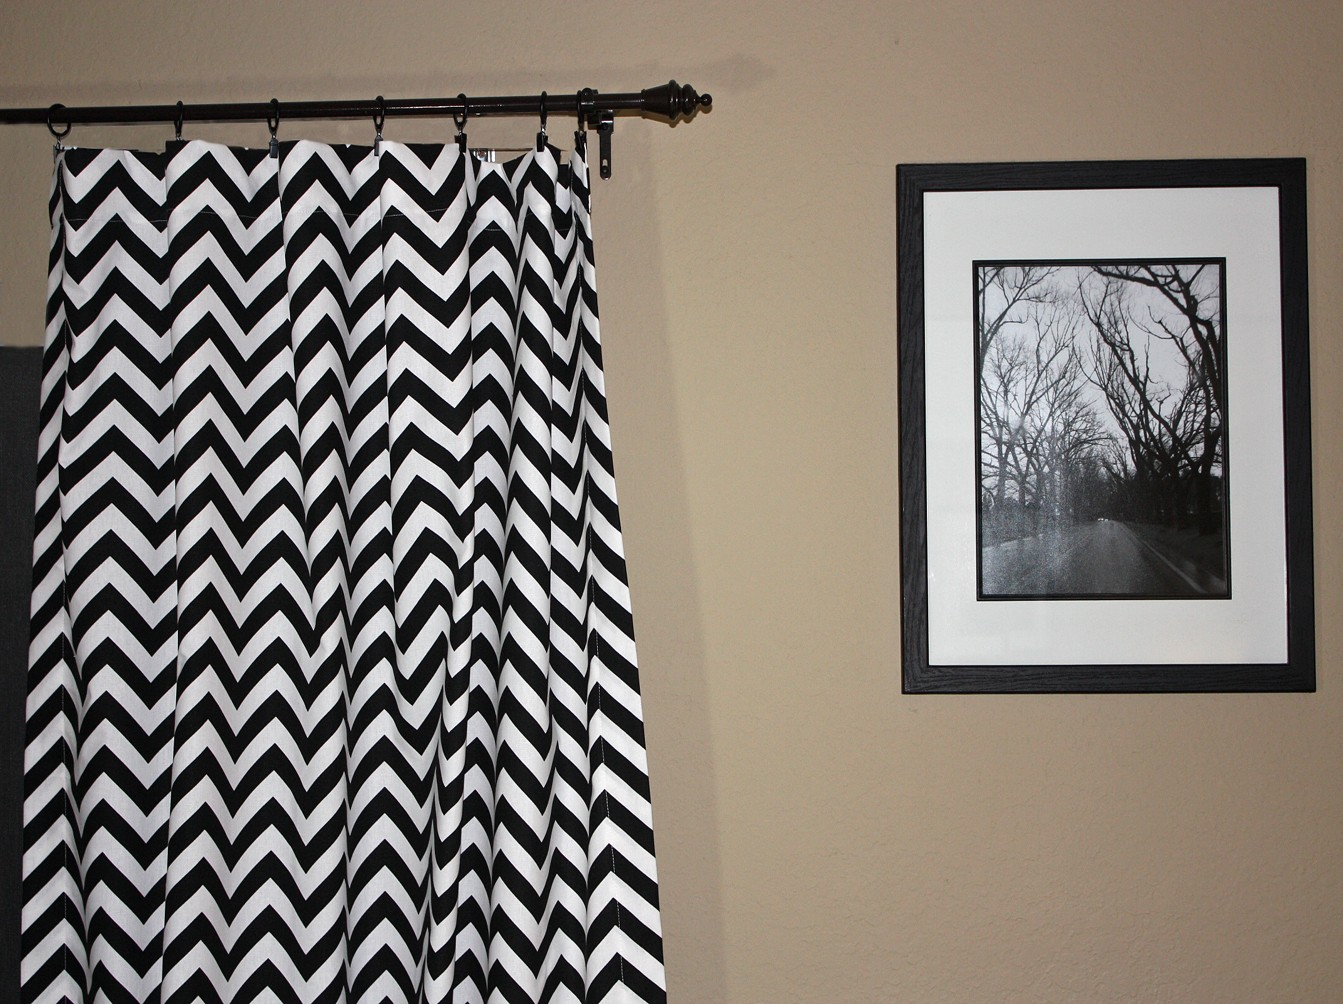 Light Blocking Curtains Target Pink Chevron Curtains